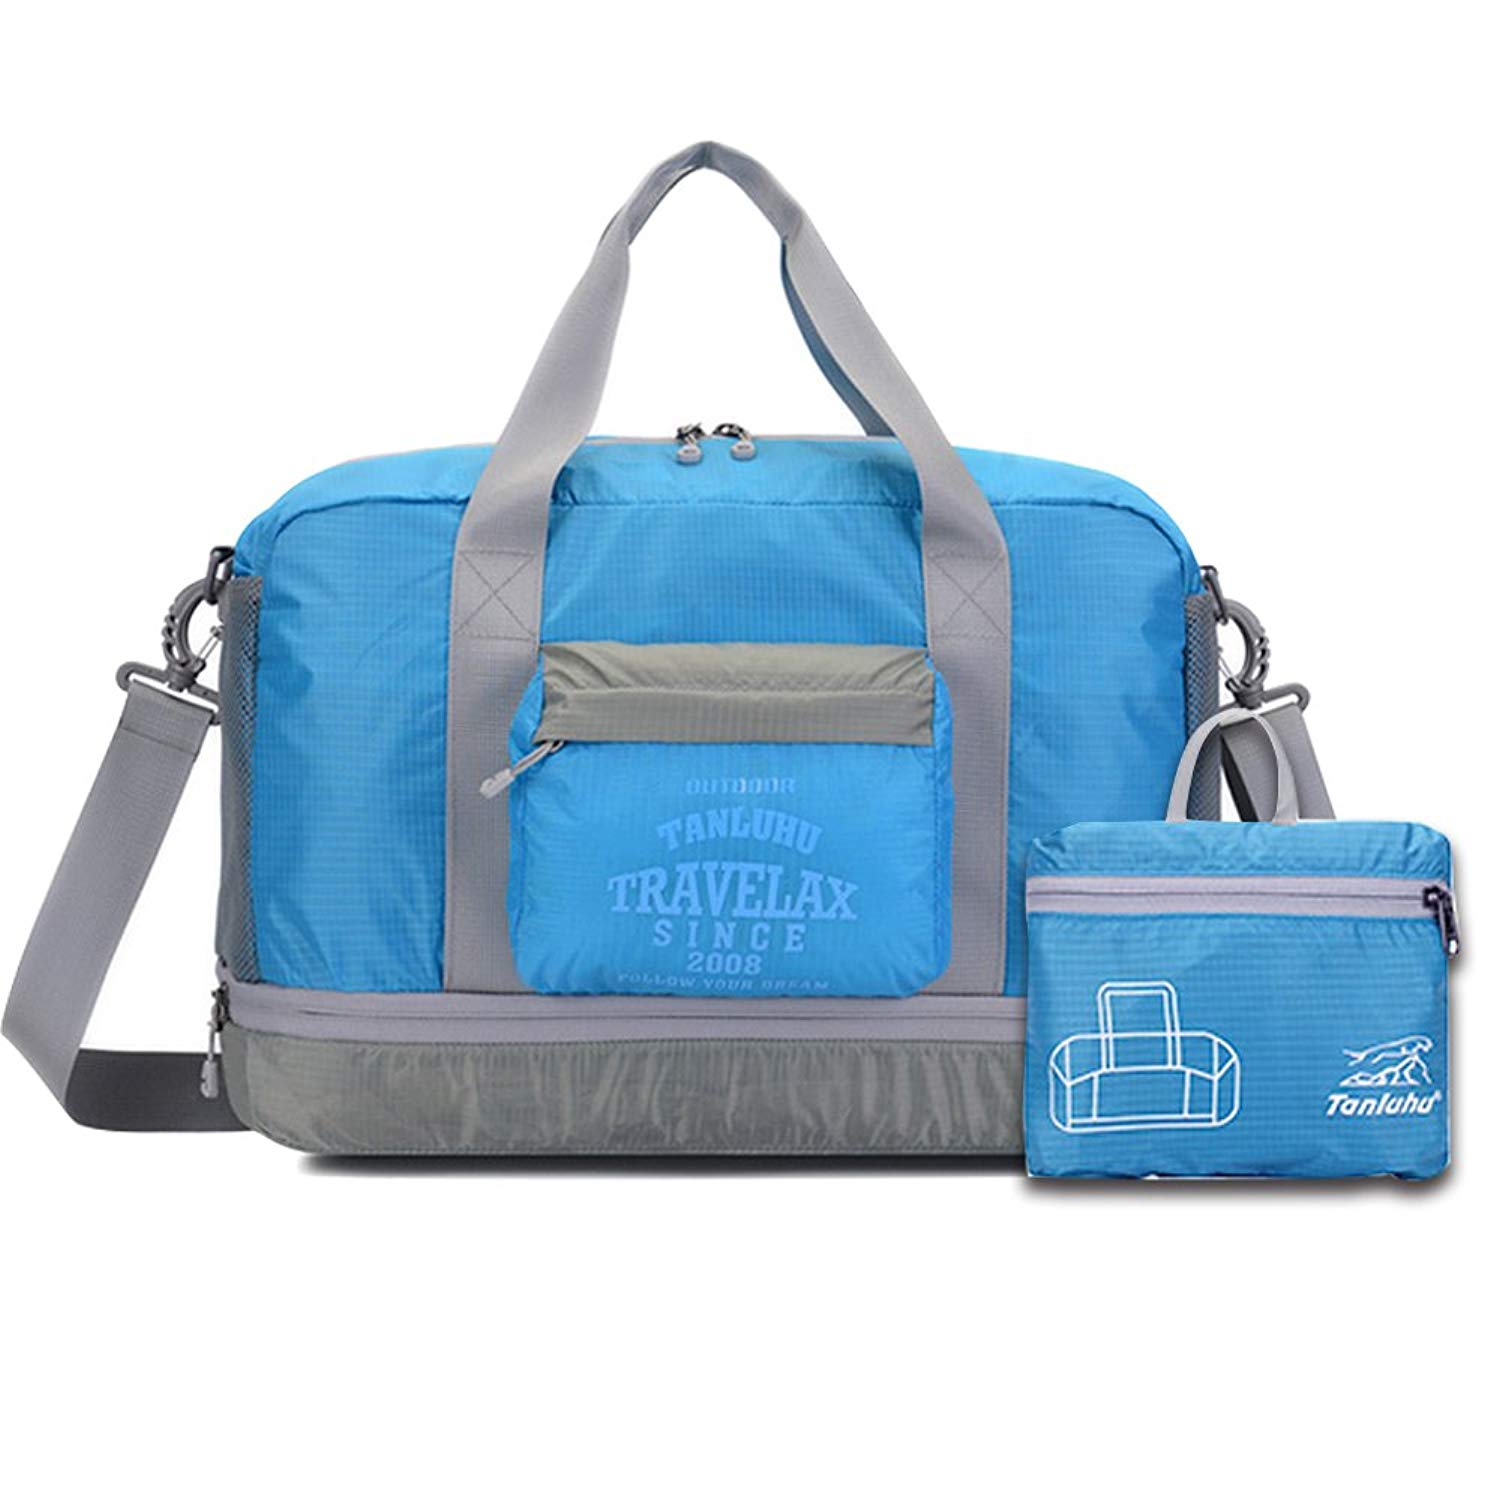 Foldable Travel Duffel Bag Doubmall Lightweight Waterproof Storage Carry Luggage Bag for Sports Gym Vacation